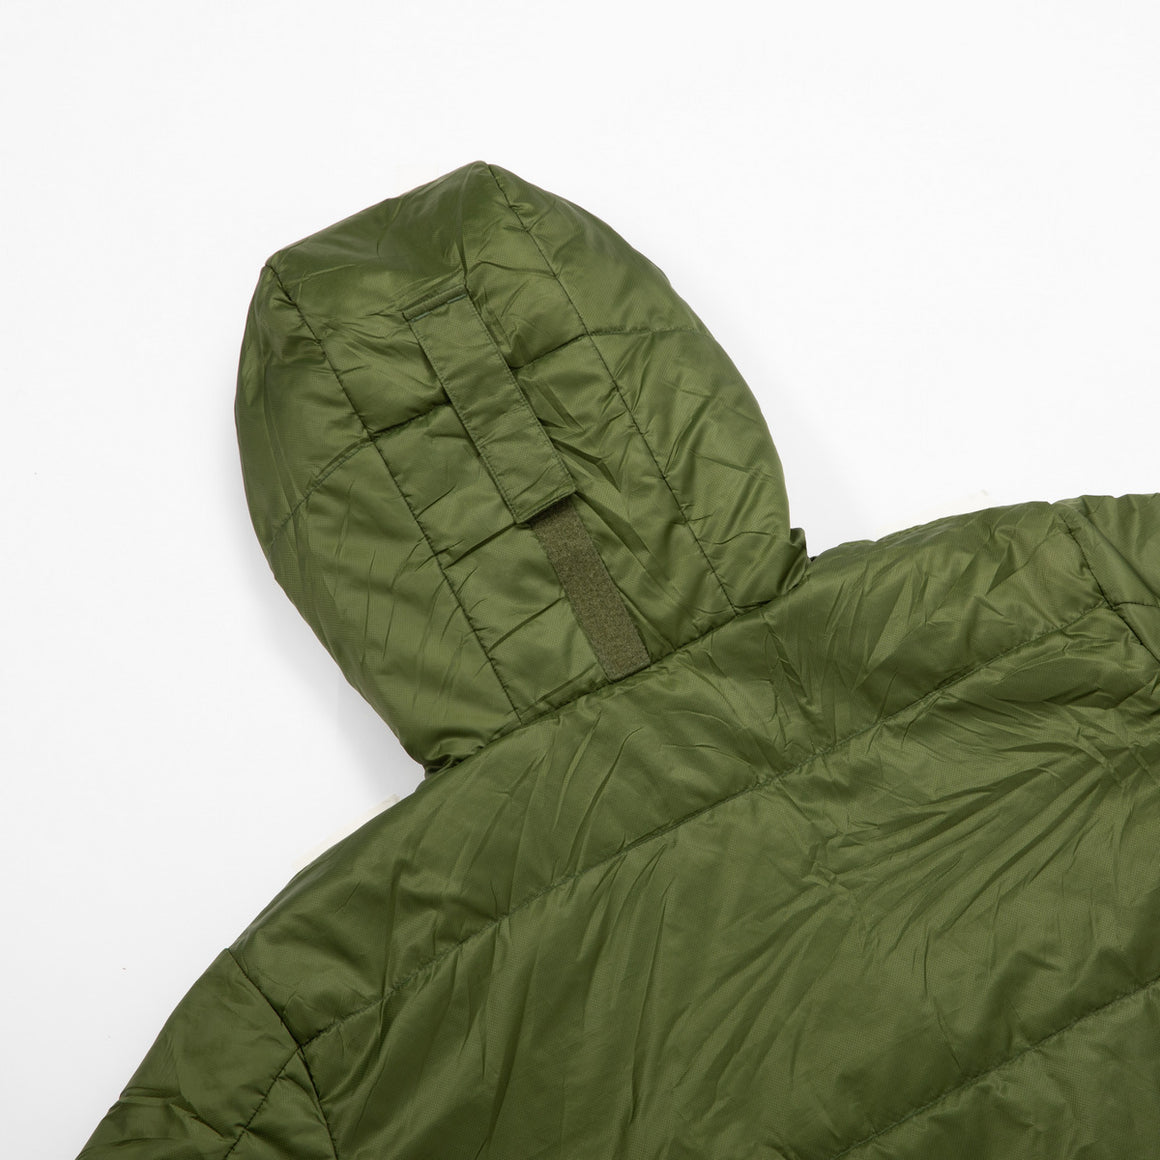 Cozybag Wilderness - the ideal 3 season sleeping bag